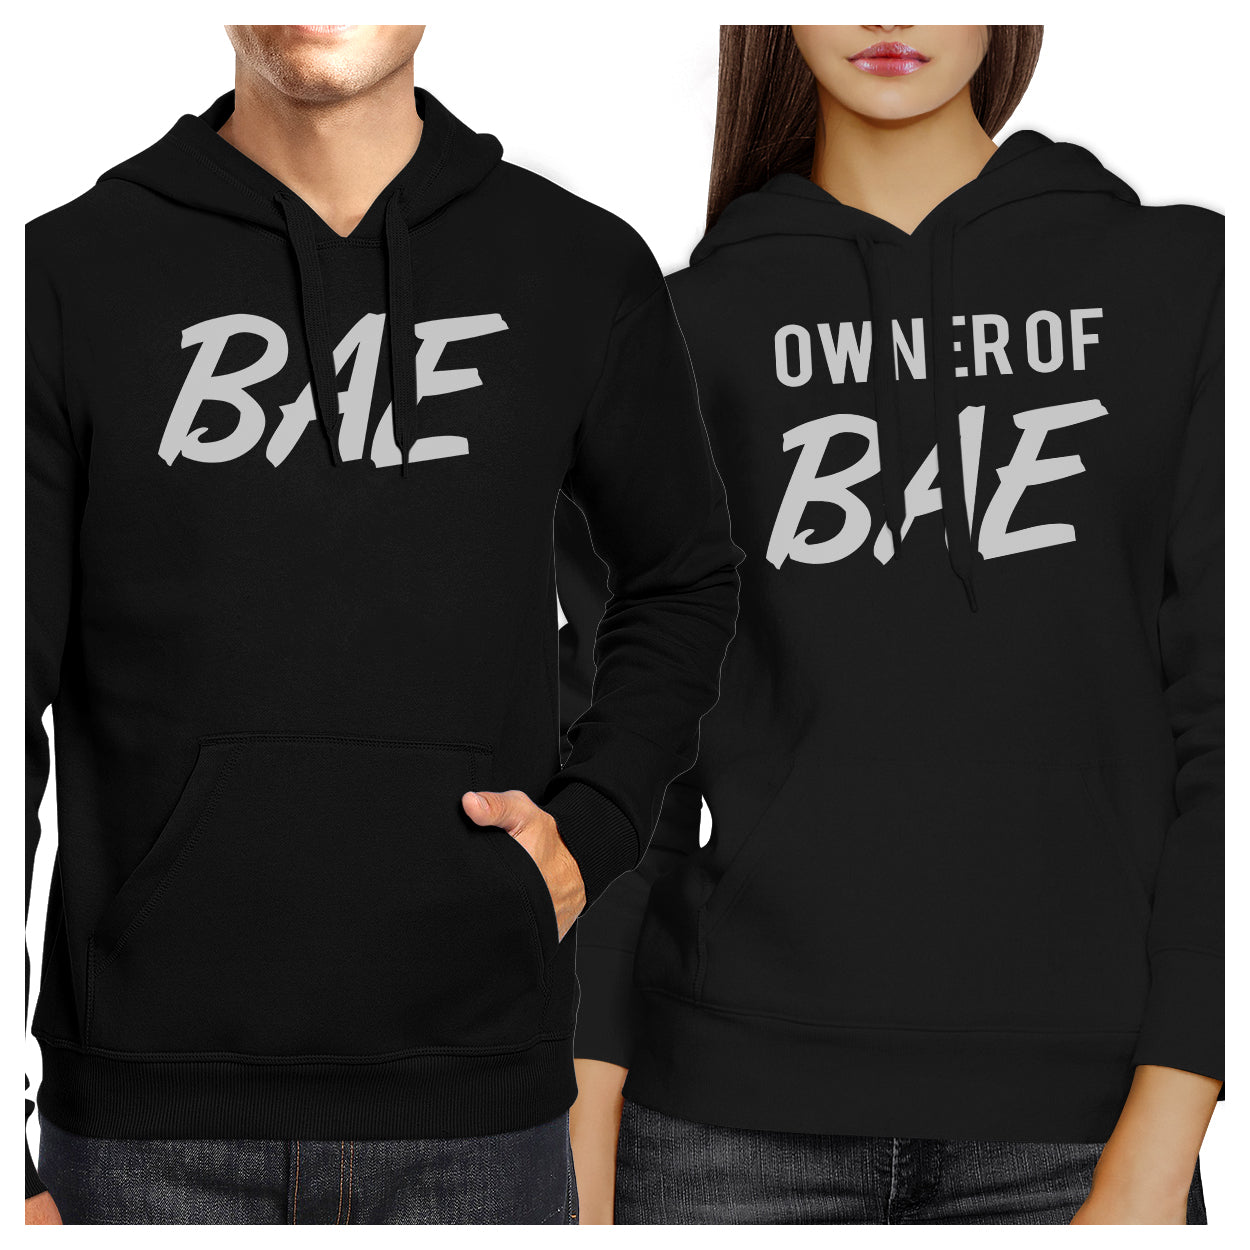 7fcf5cc13fe Bae And Owner Of Bae Matching Couple Black Hoodie - 365 IN LOVE ...